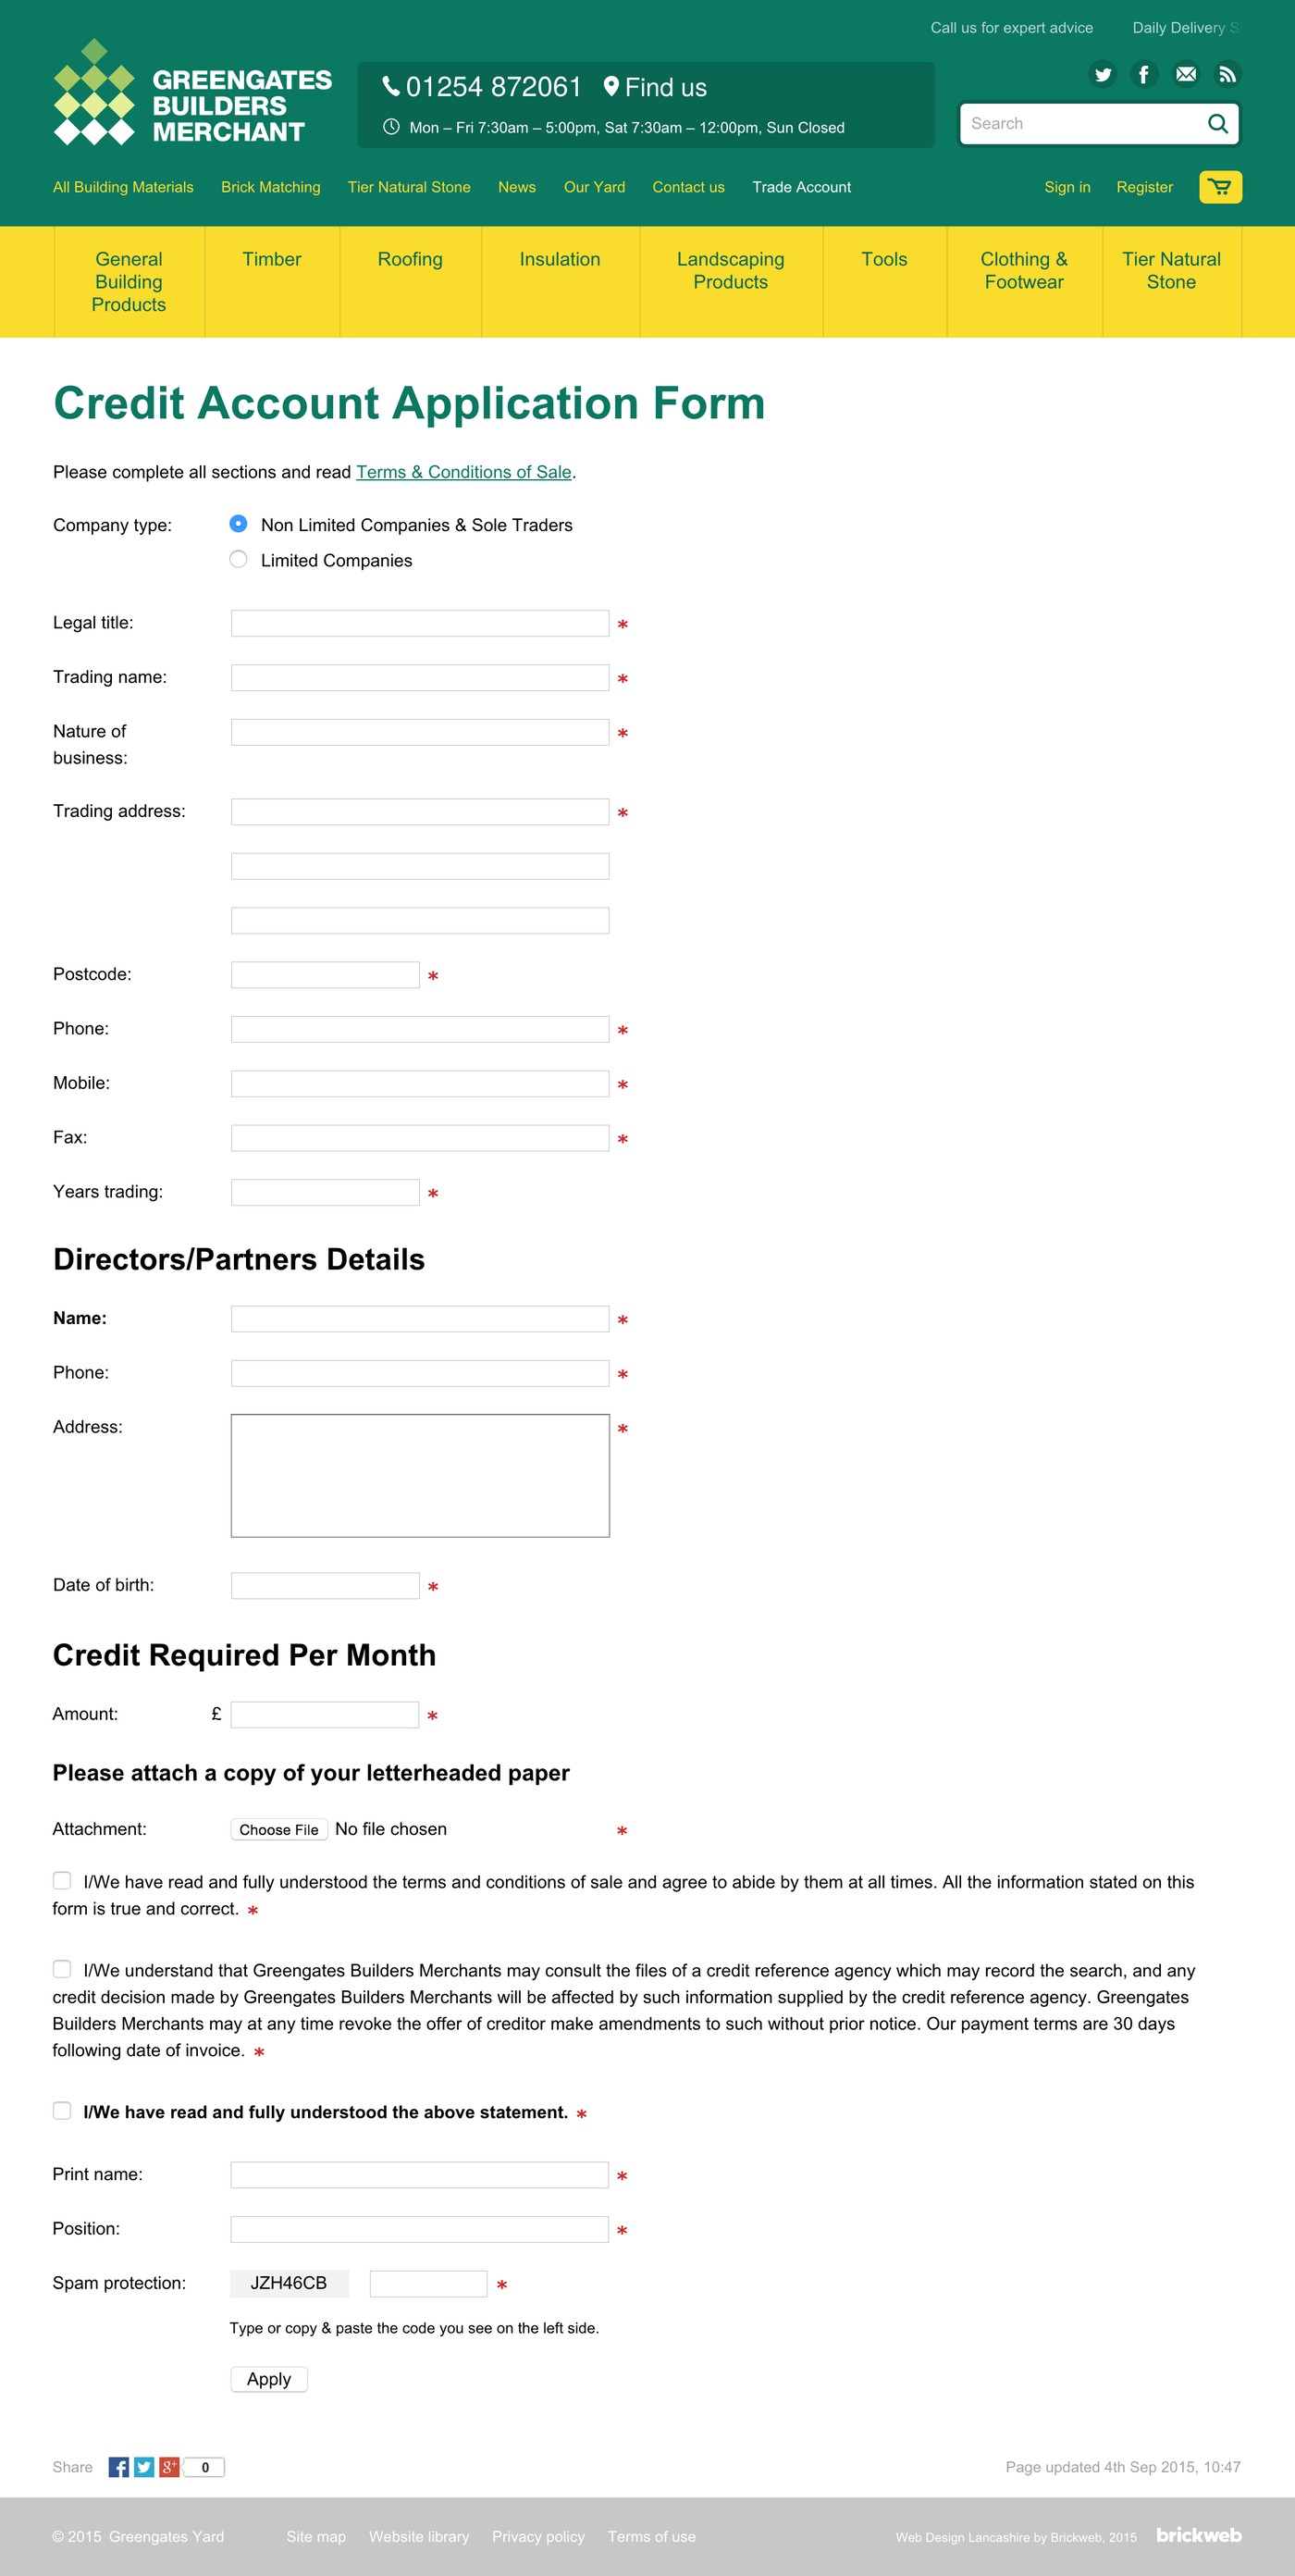 Greengates Builders Merchants 2015 Application Form